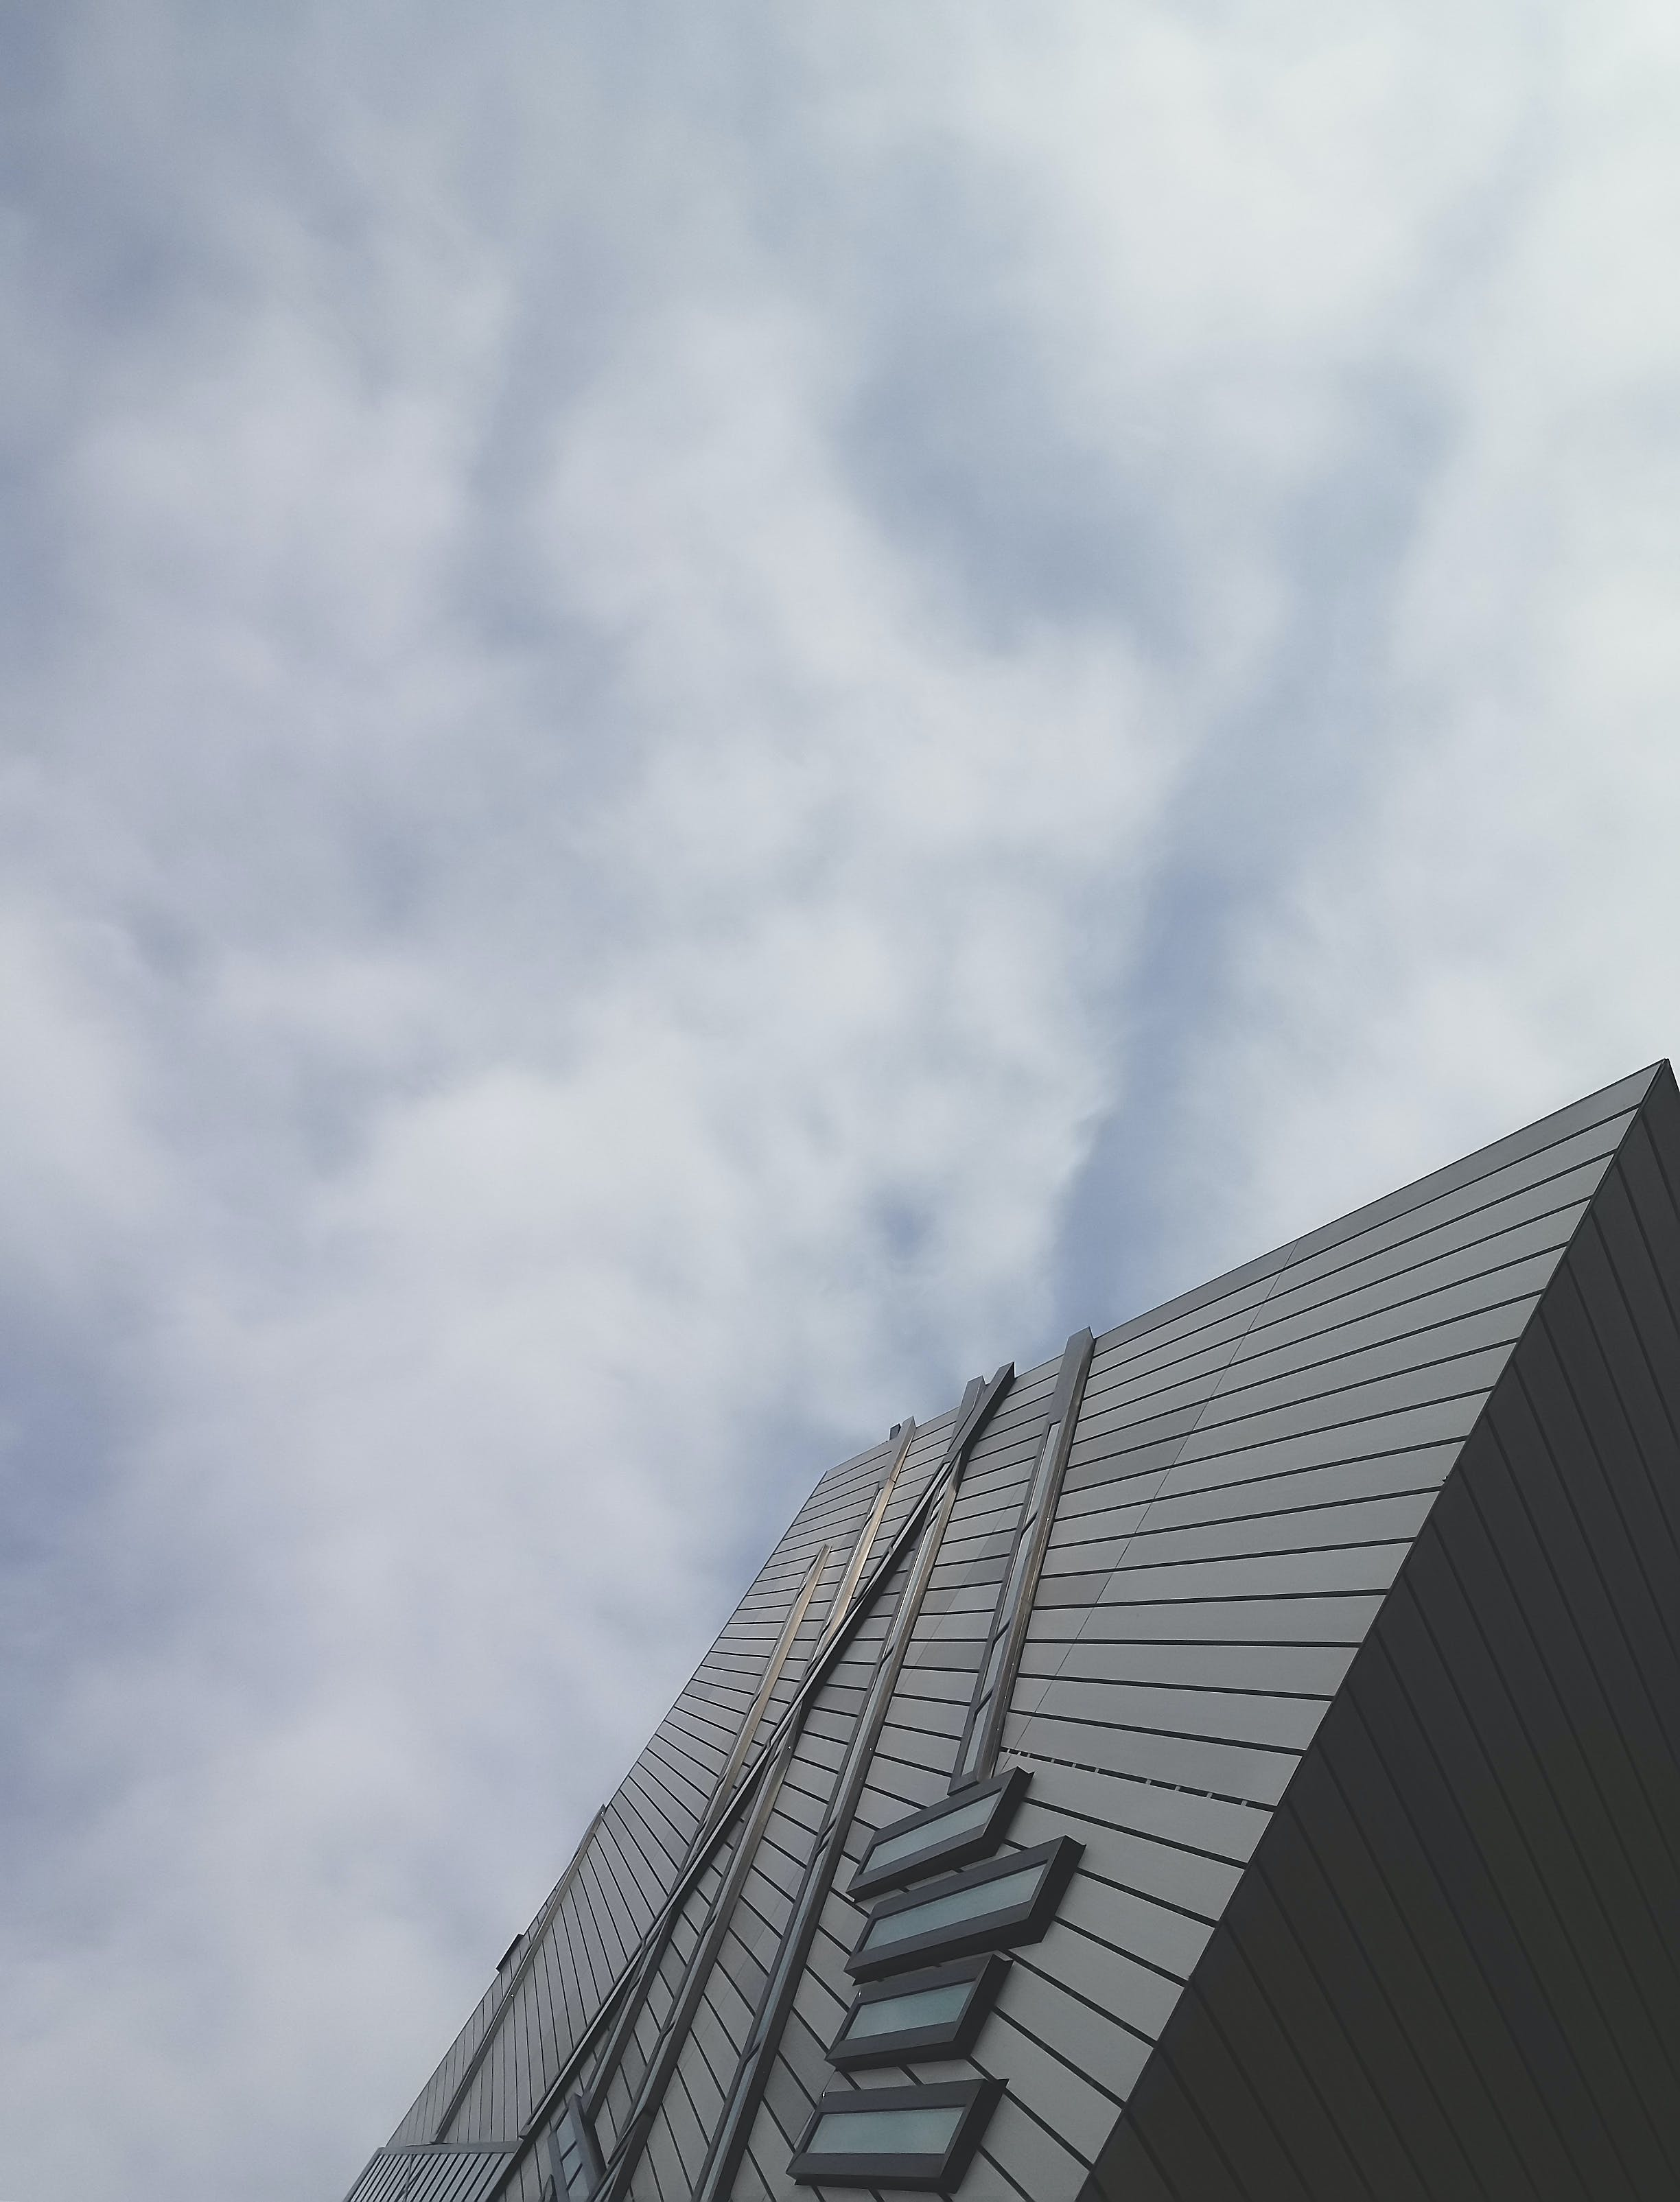 Low Angle Shot of Modern Building